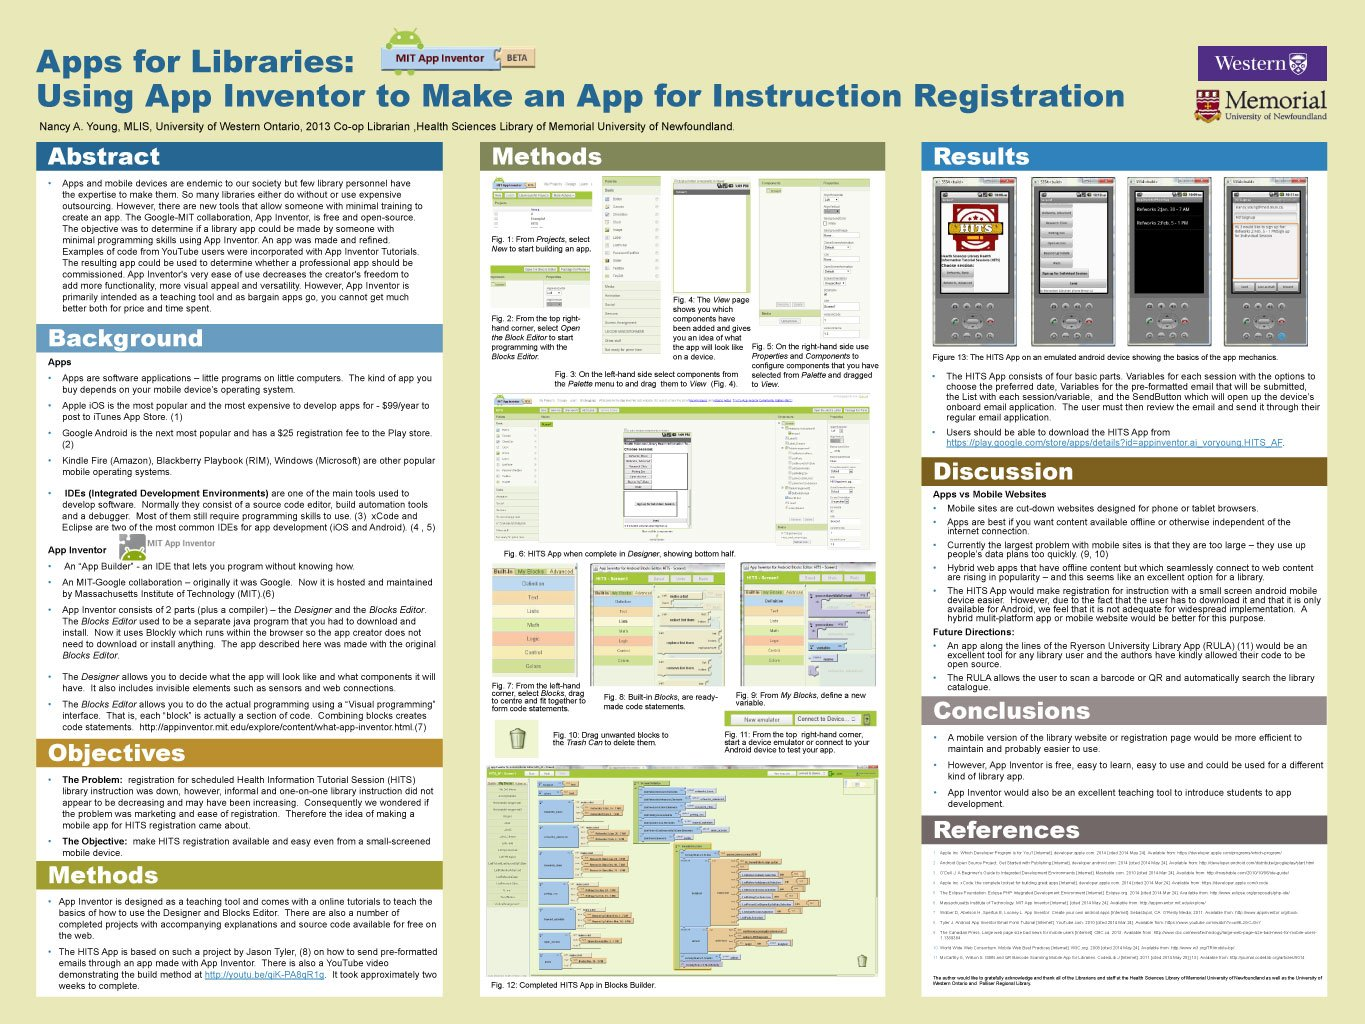 CLA Poster: Apps for Libraries: Using App Inventor to Make